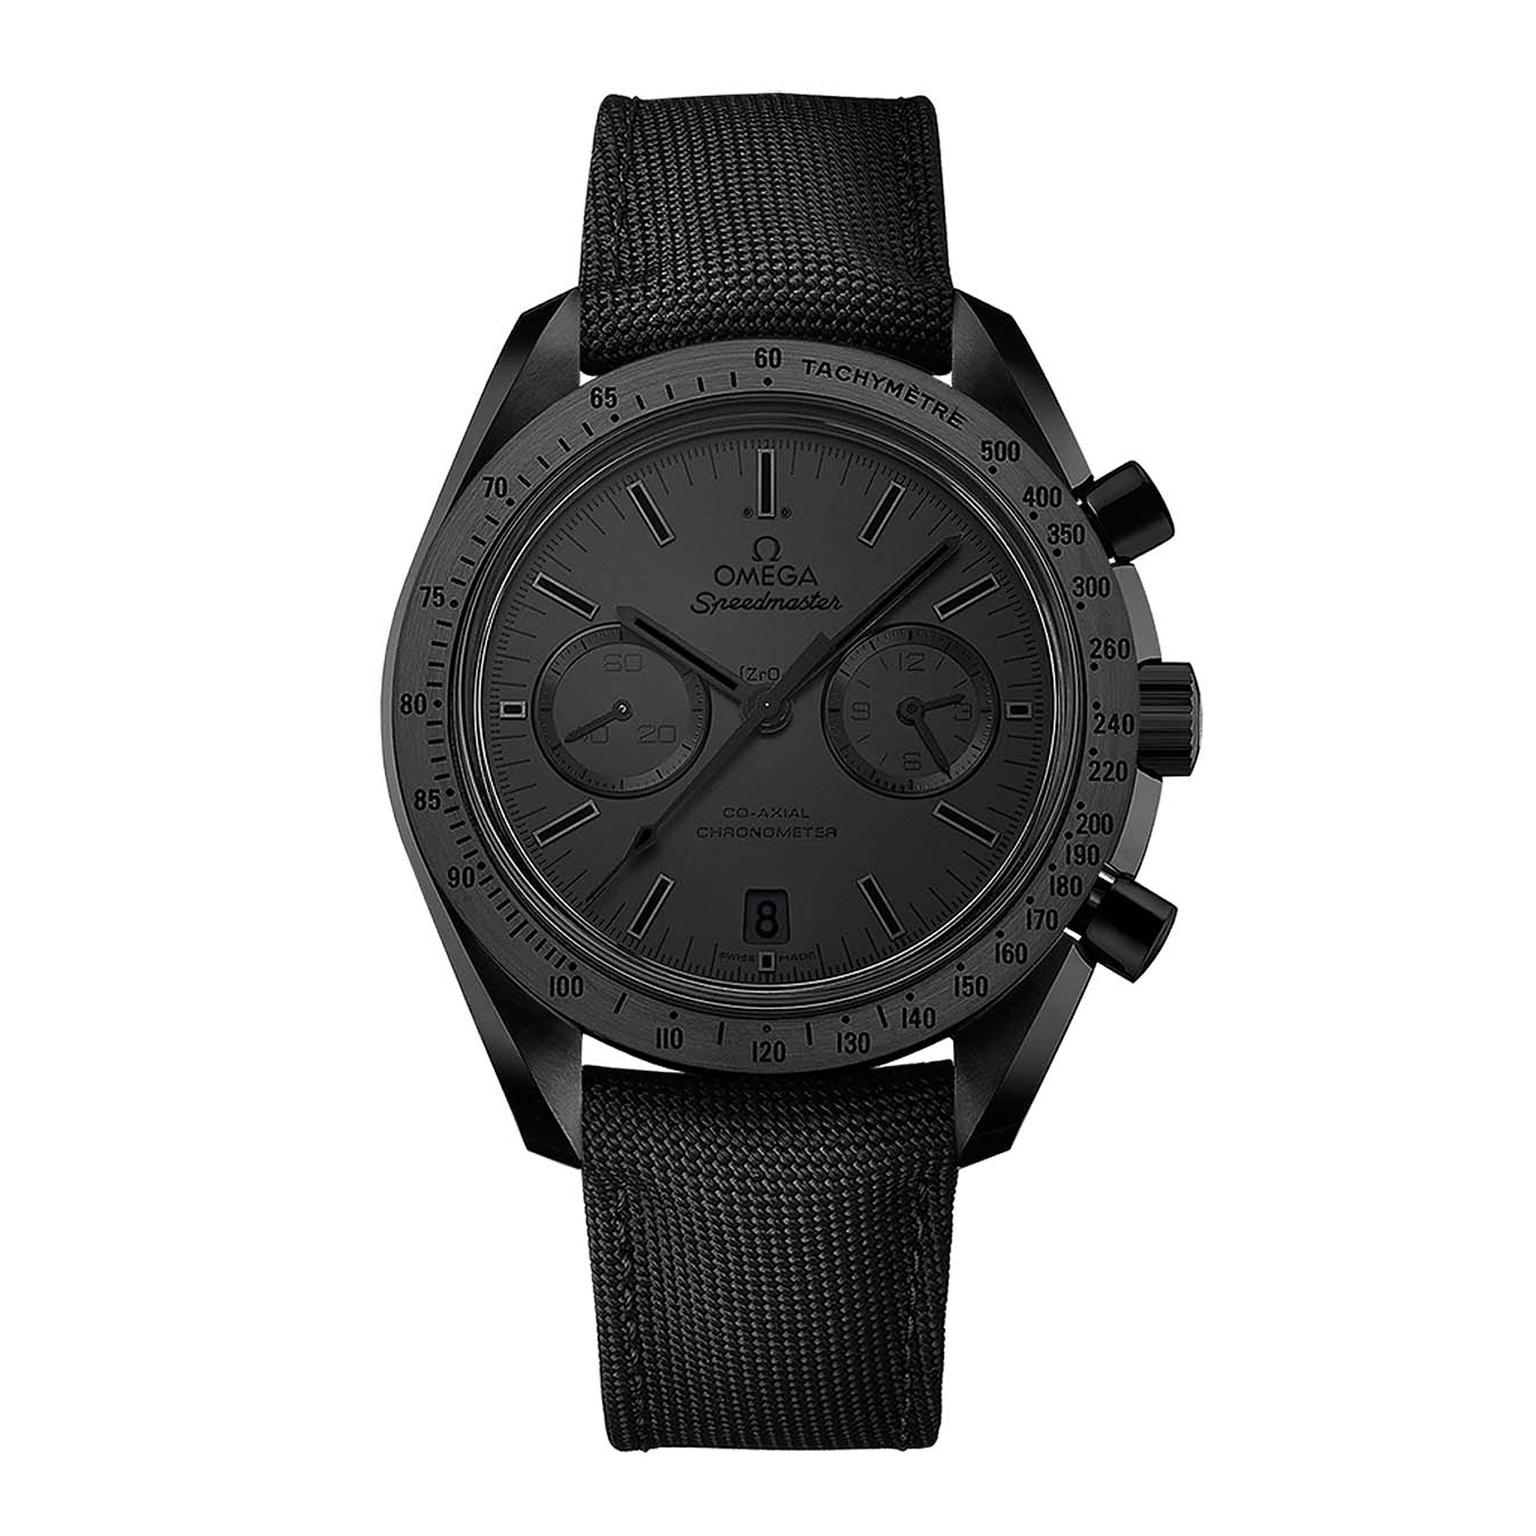 Omega Dark Side of the Moon watch in Black Black__zoom